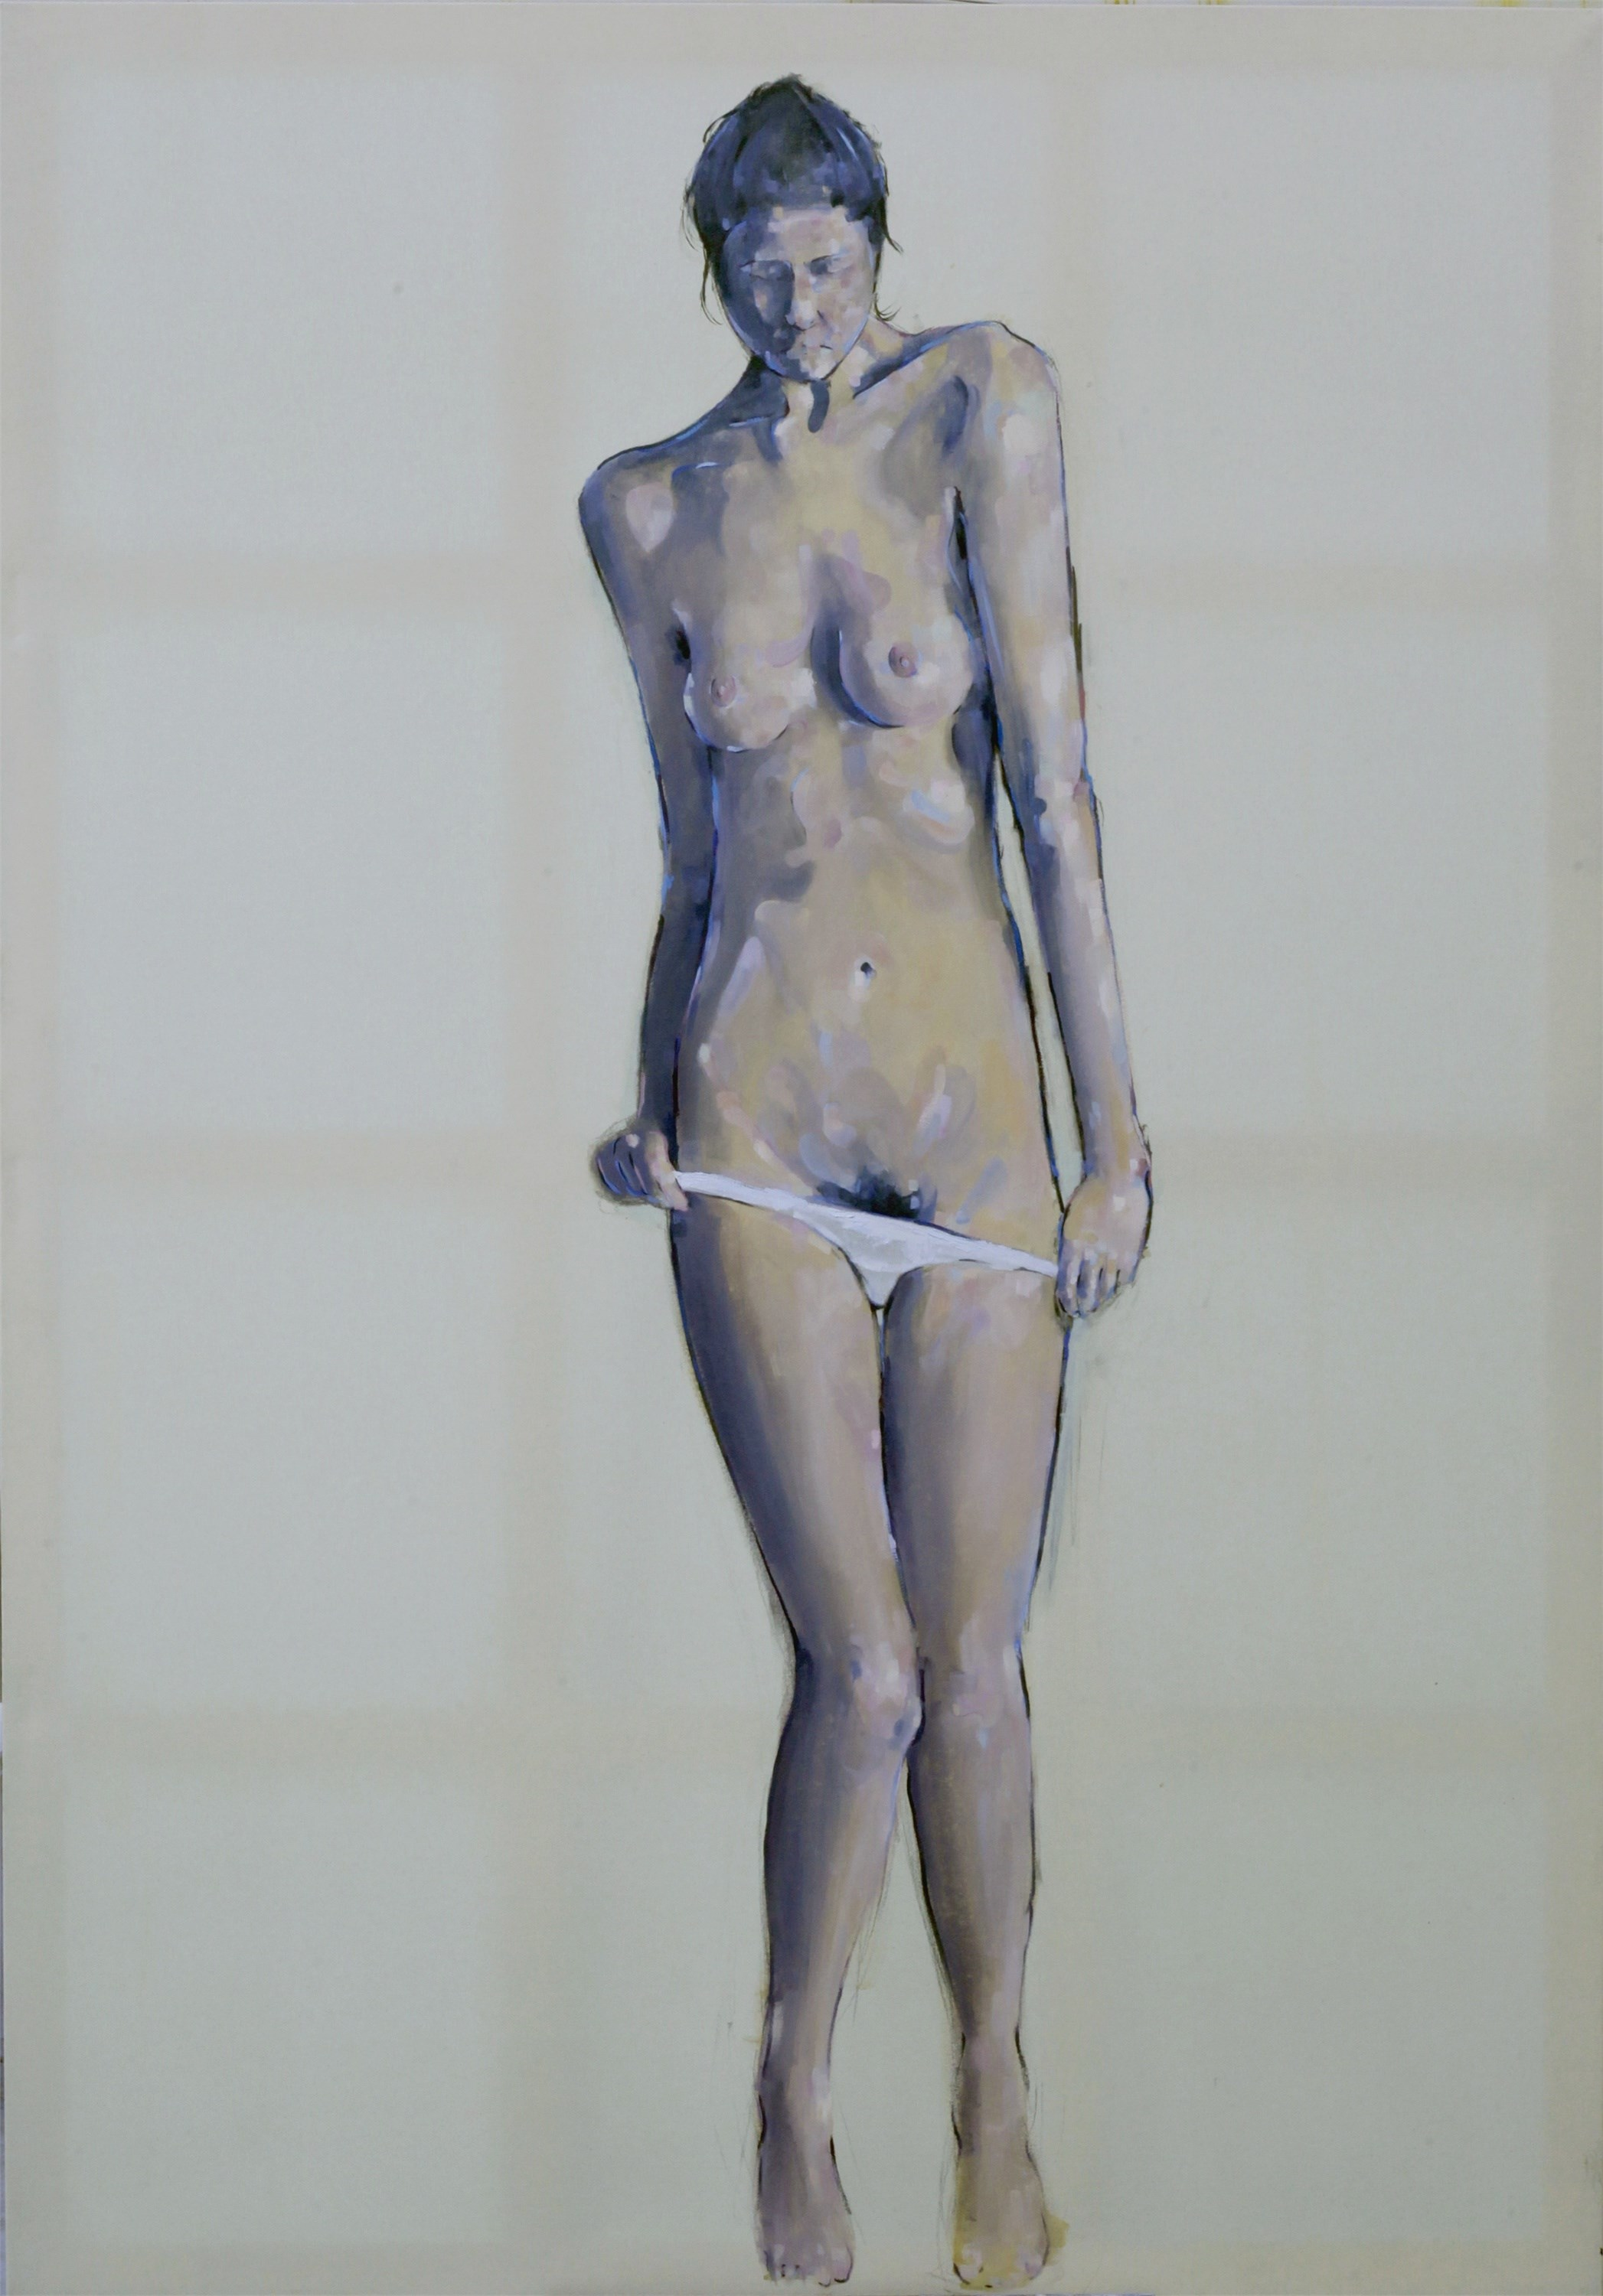 Calypso, original Nude Canvas Painting by Giorgos Kapsalakis